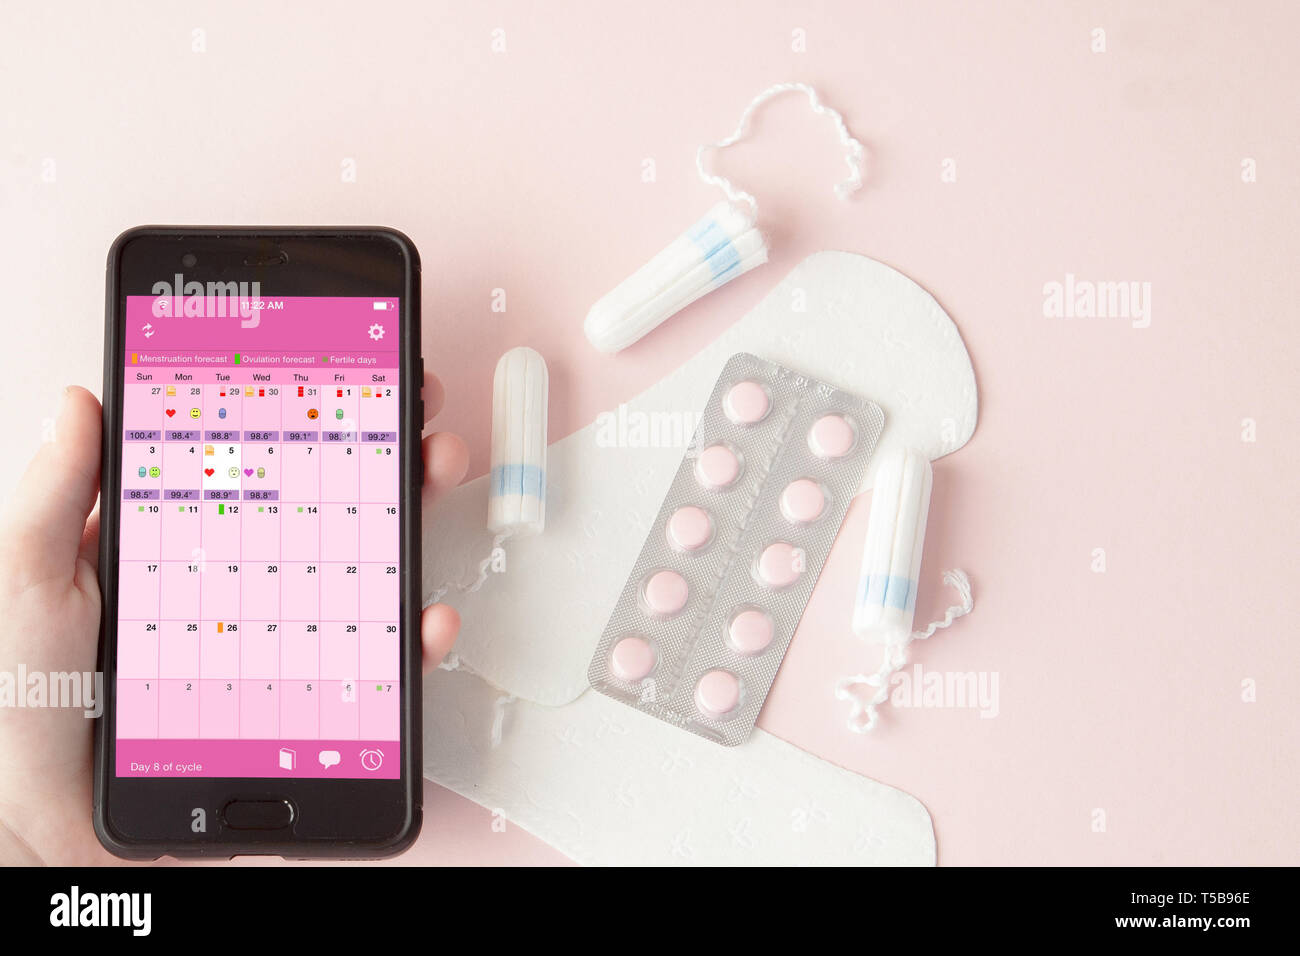 Tampon, feminine, sanitary pads for critical days, feminine calendar, pain pills during menstruation on a pink background. Tracking the menstrual - Stock Image